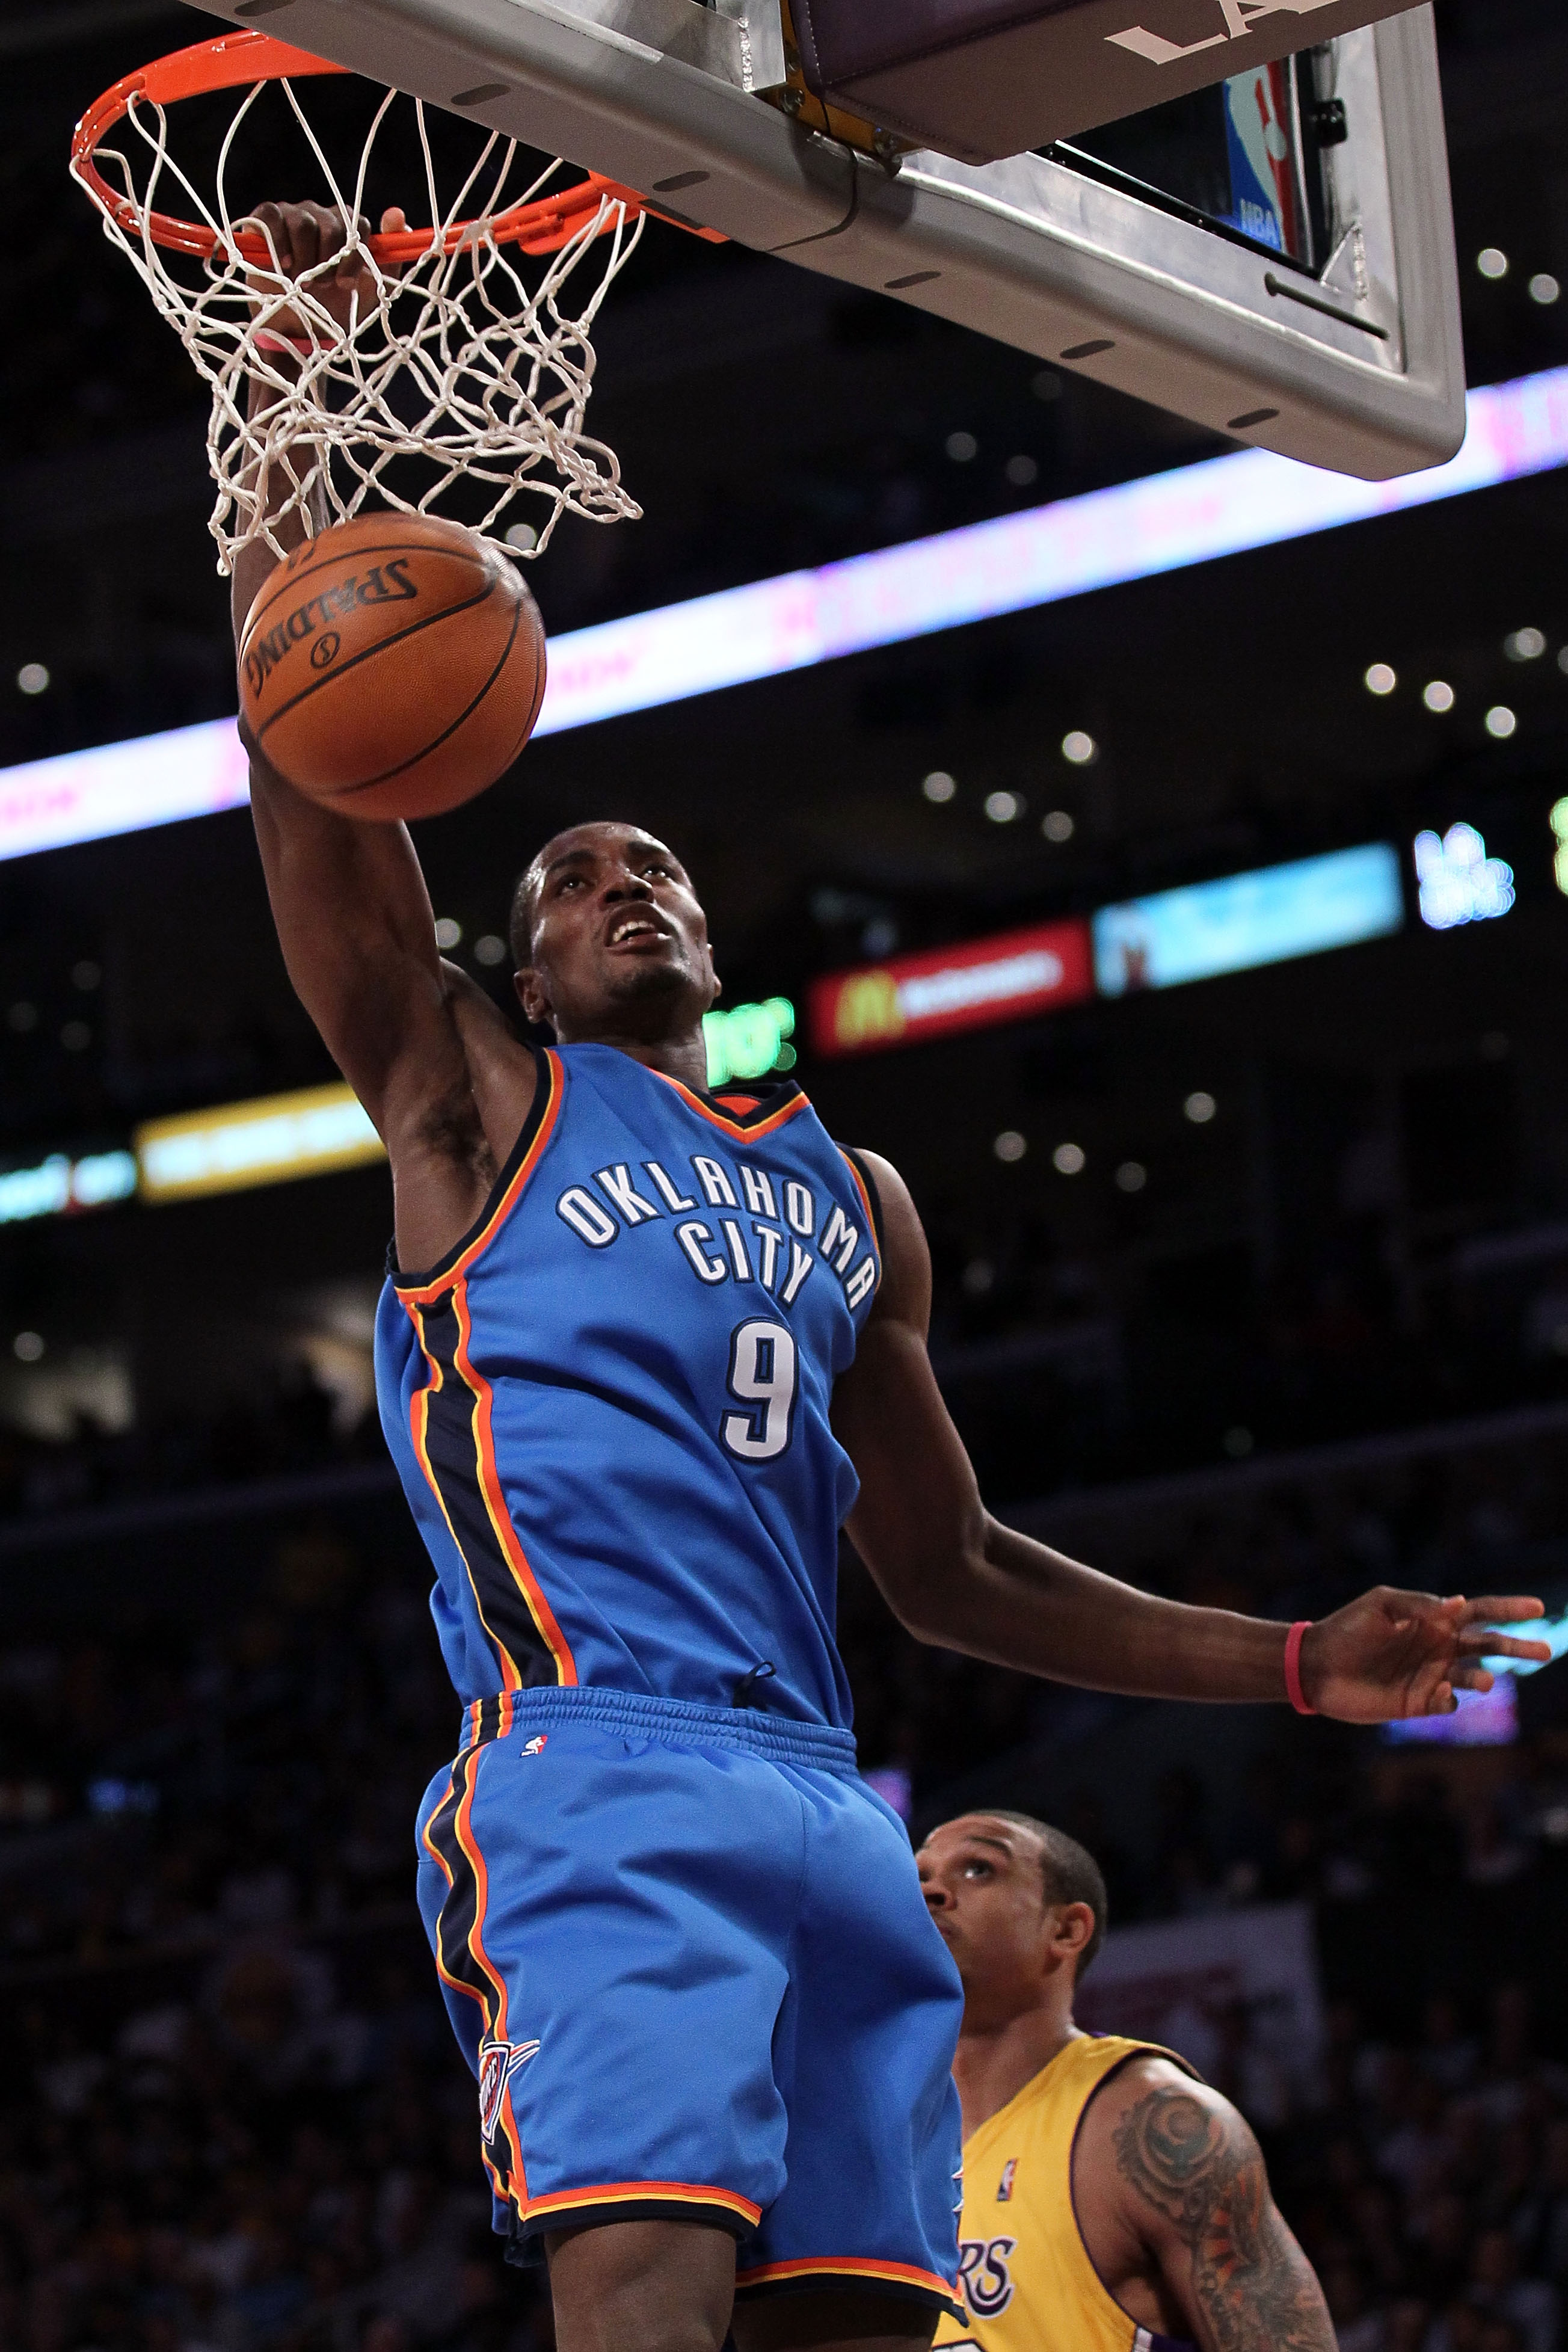 LOS ANGELES, CA - APRIL 27:  Serge Ibaka #9 of the Oklahoma City Thunder dunks the ball in the fourth quarter against the Los Angeles Lakers during Game Five of the Western Conference Quarterfinals of the 2010 NBA Playoffs at Staples Center on April 27, 2